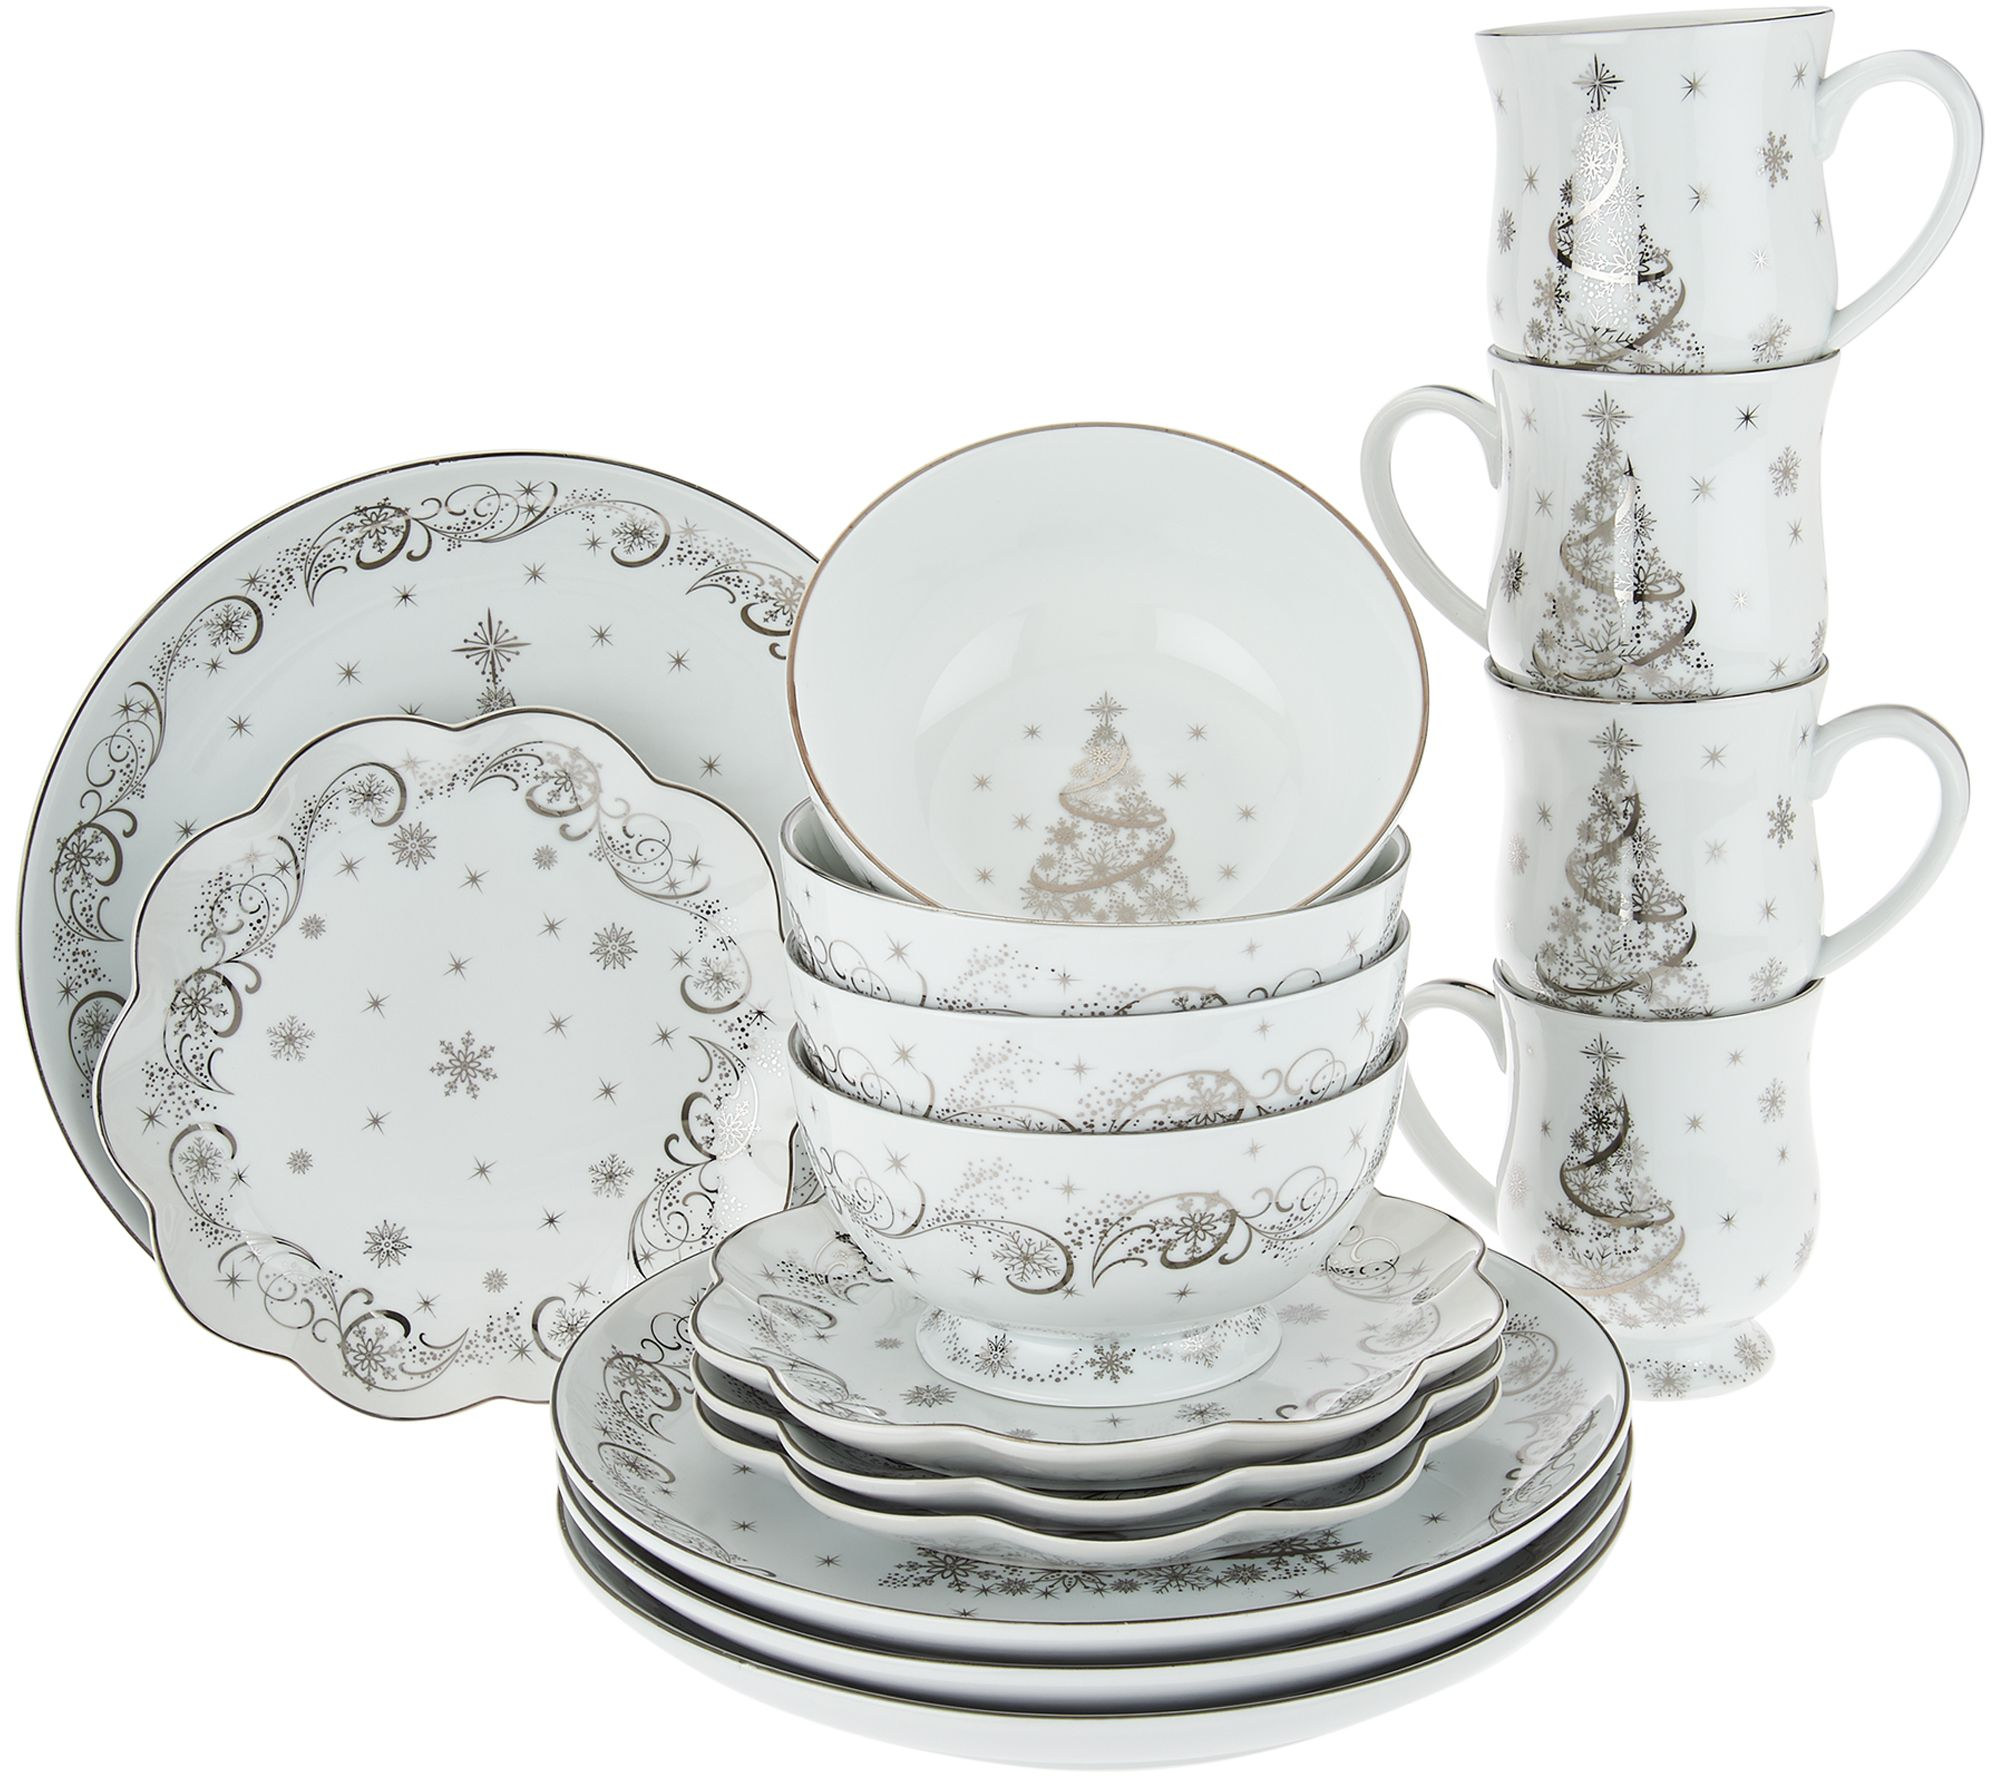 Temp-tations Metallic Christmas Eve 16-piece Dinnerware Set - Page 1 u2014 QVC.com  sc 1 st  QVC.com & Temp-tations Metallic Christmas Eve 16-piece Dinnerware Set - Page 1 ...